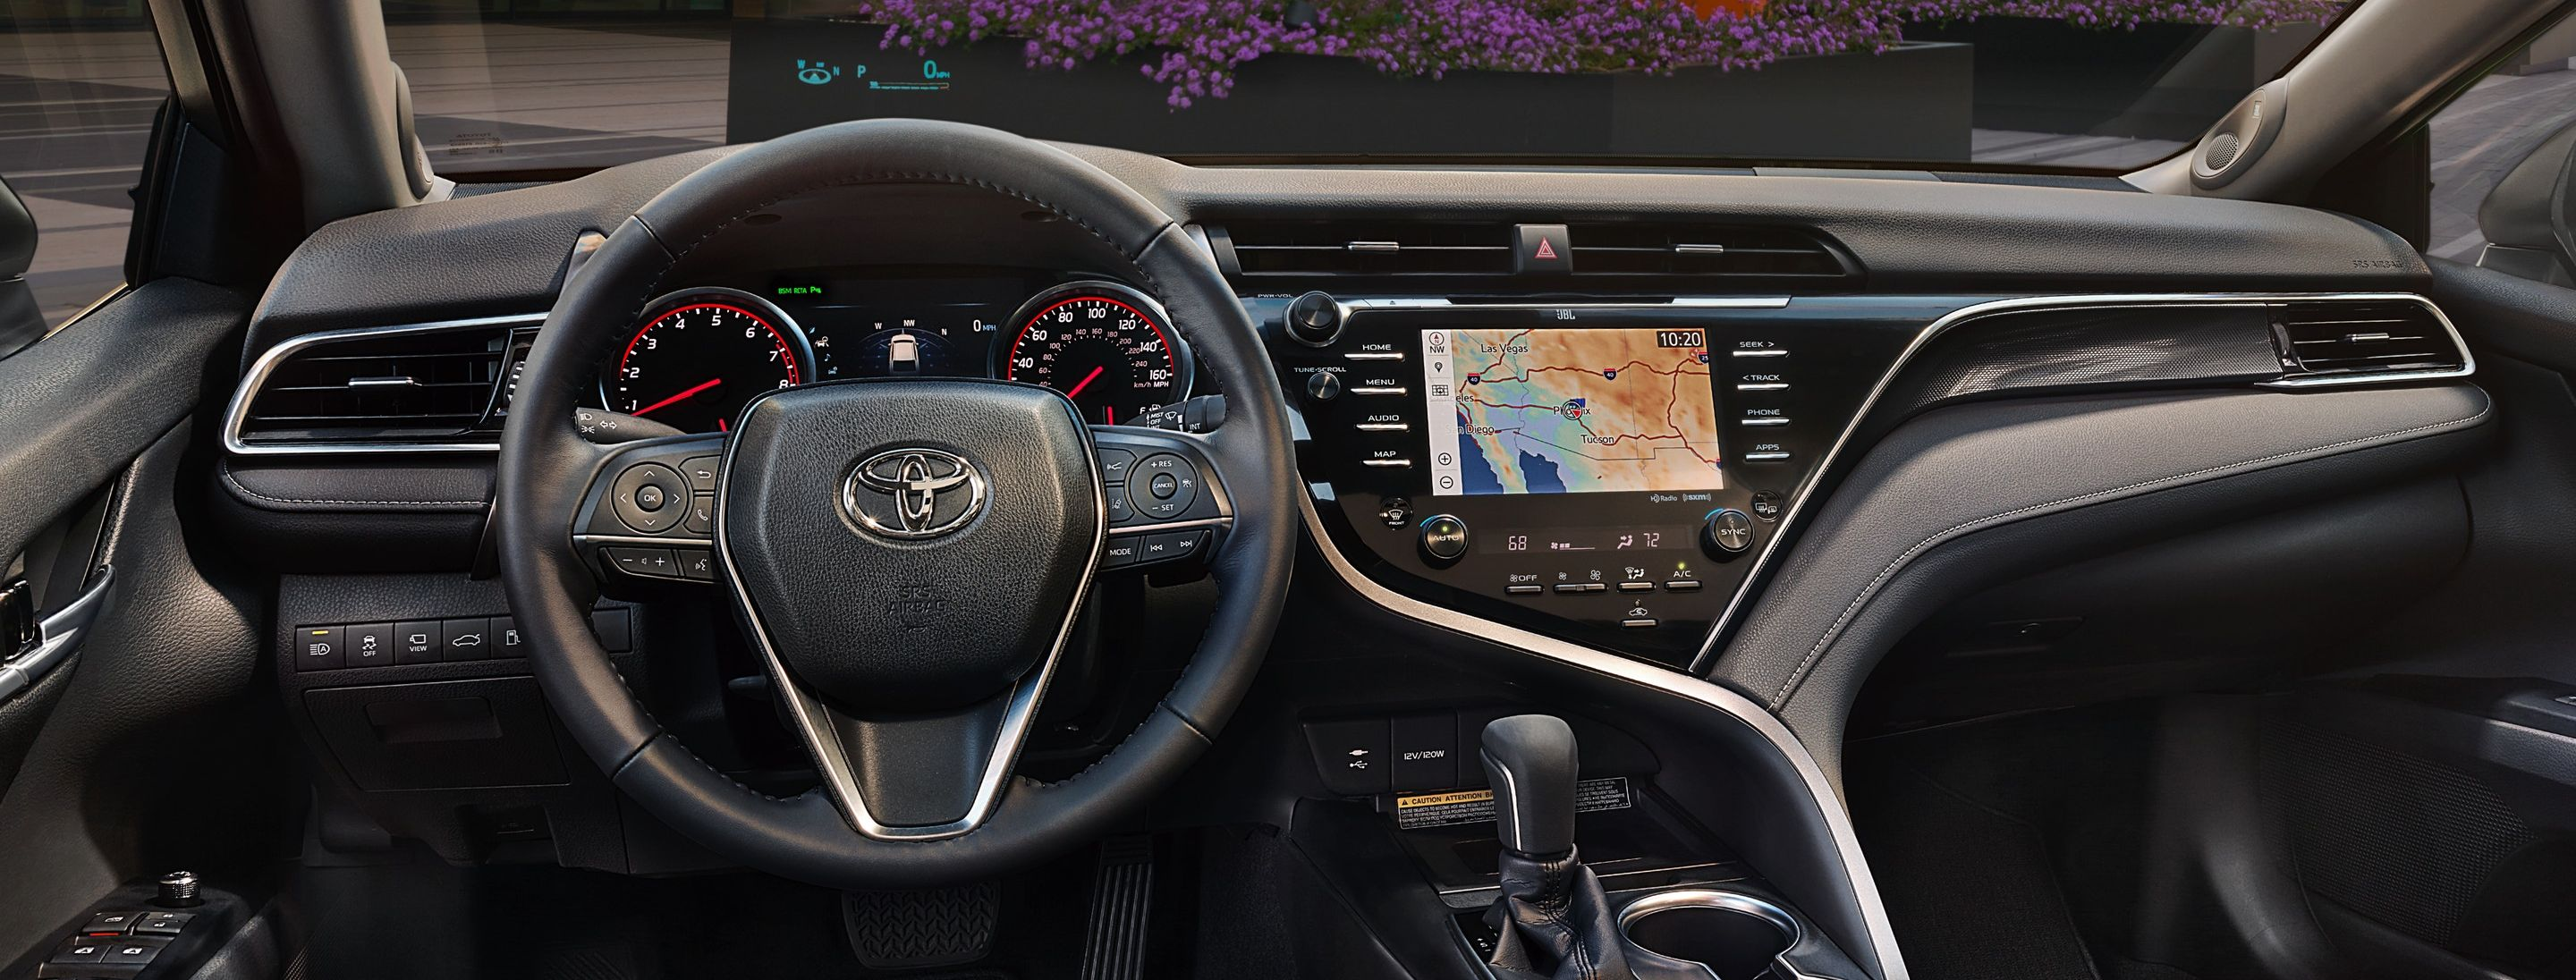 The Well-Appointed Dashboard of the 2019 Camry